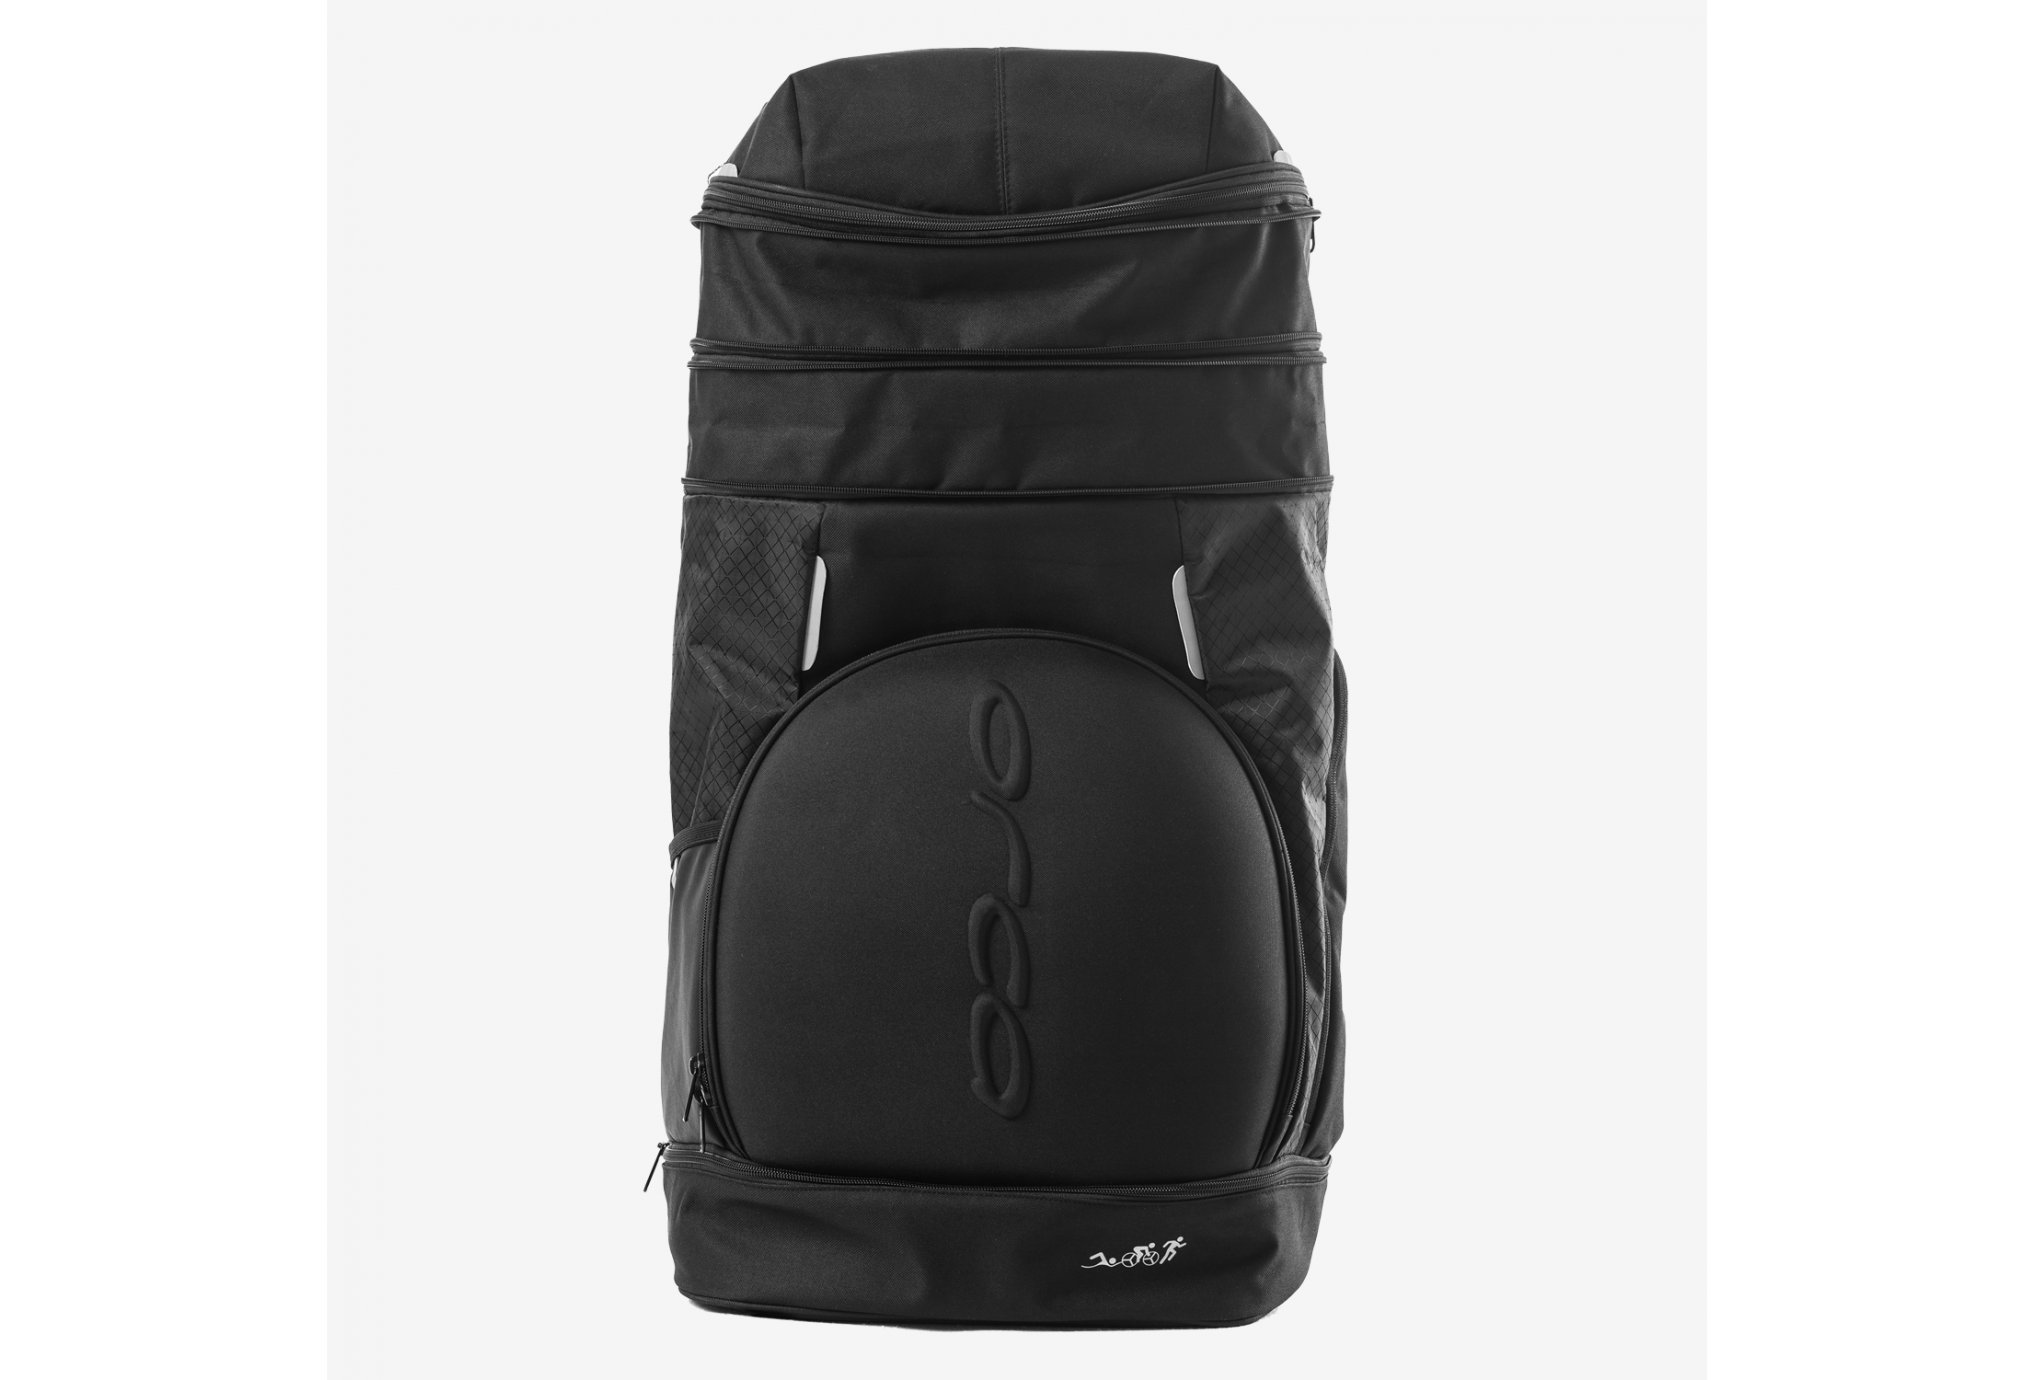 Orca Transition Backpack Sac à dos